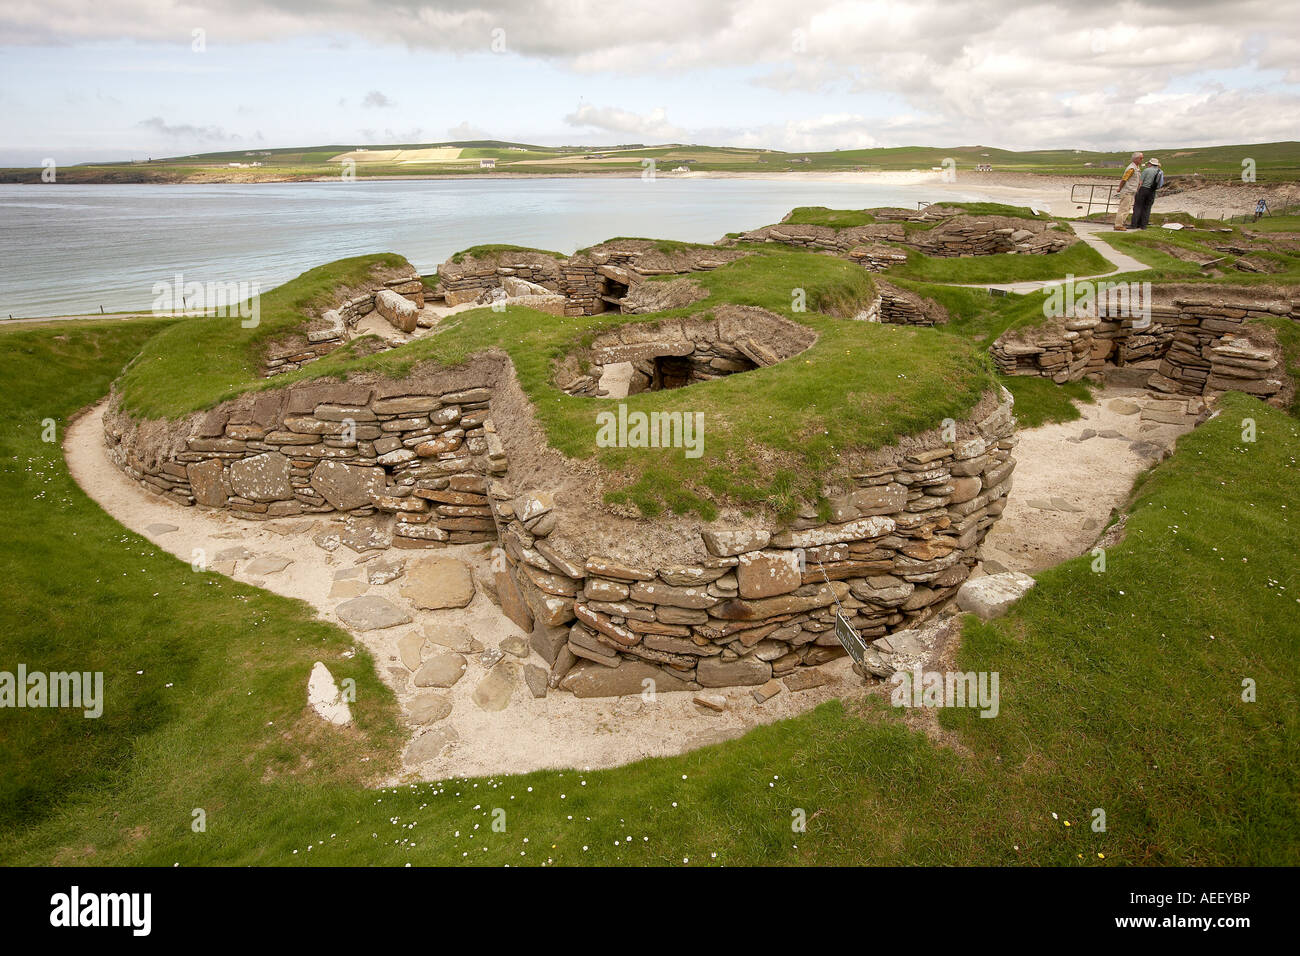 orkney springs chat sites The orkney islands stand off the north coast of caithness orkney comprises of about 70 islands of which 20 are inhabited the largest island is known as mainland and.